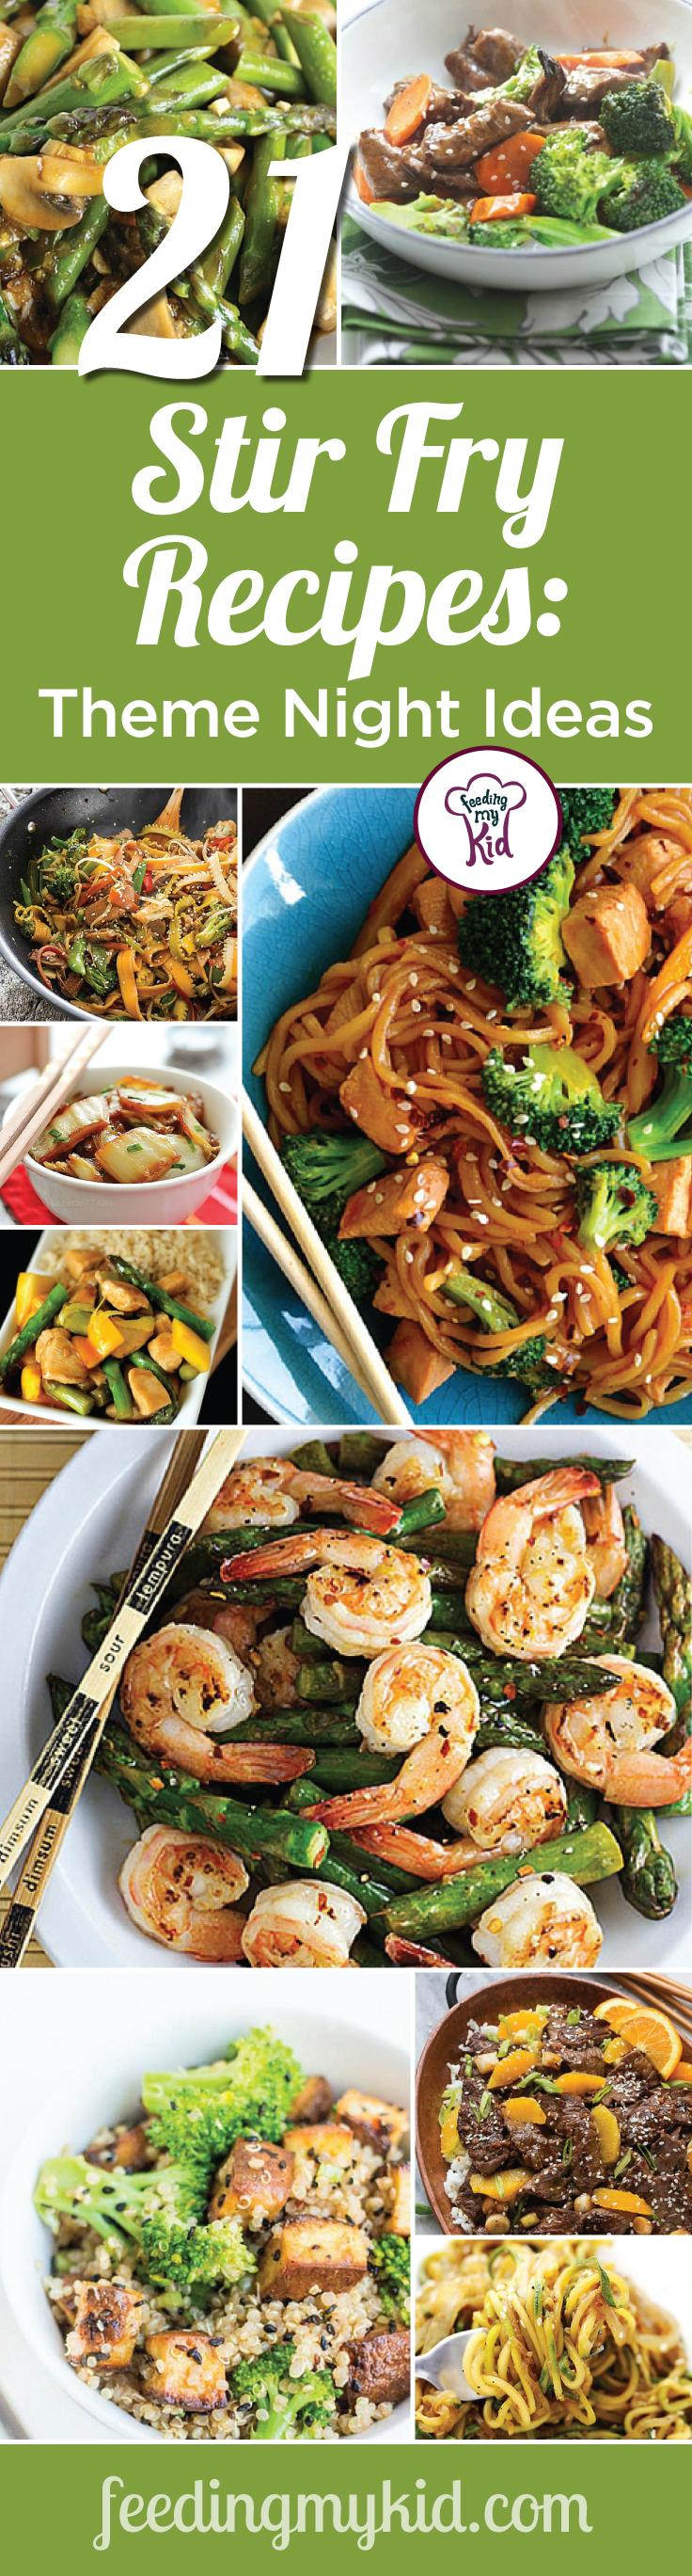 This is a must pin! Try these great stir fry recipes, perfect for your theme night! Feeding My Kid is a great website for parents, filled with all the information you need about how to raise your kids, from healthy tips to nutritious recipes. #stirfry #themenight